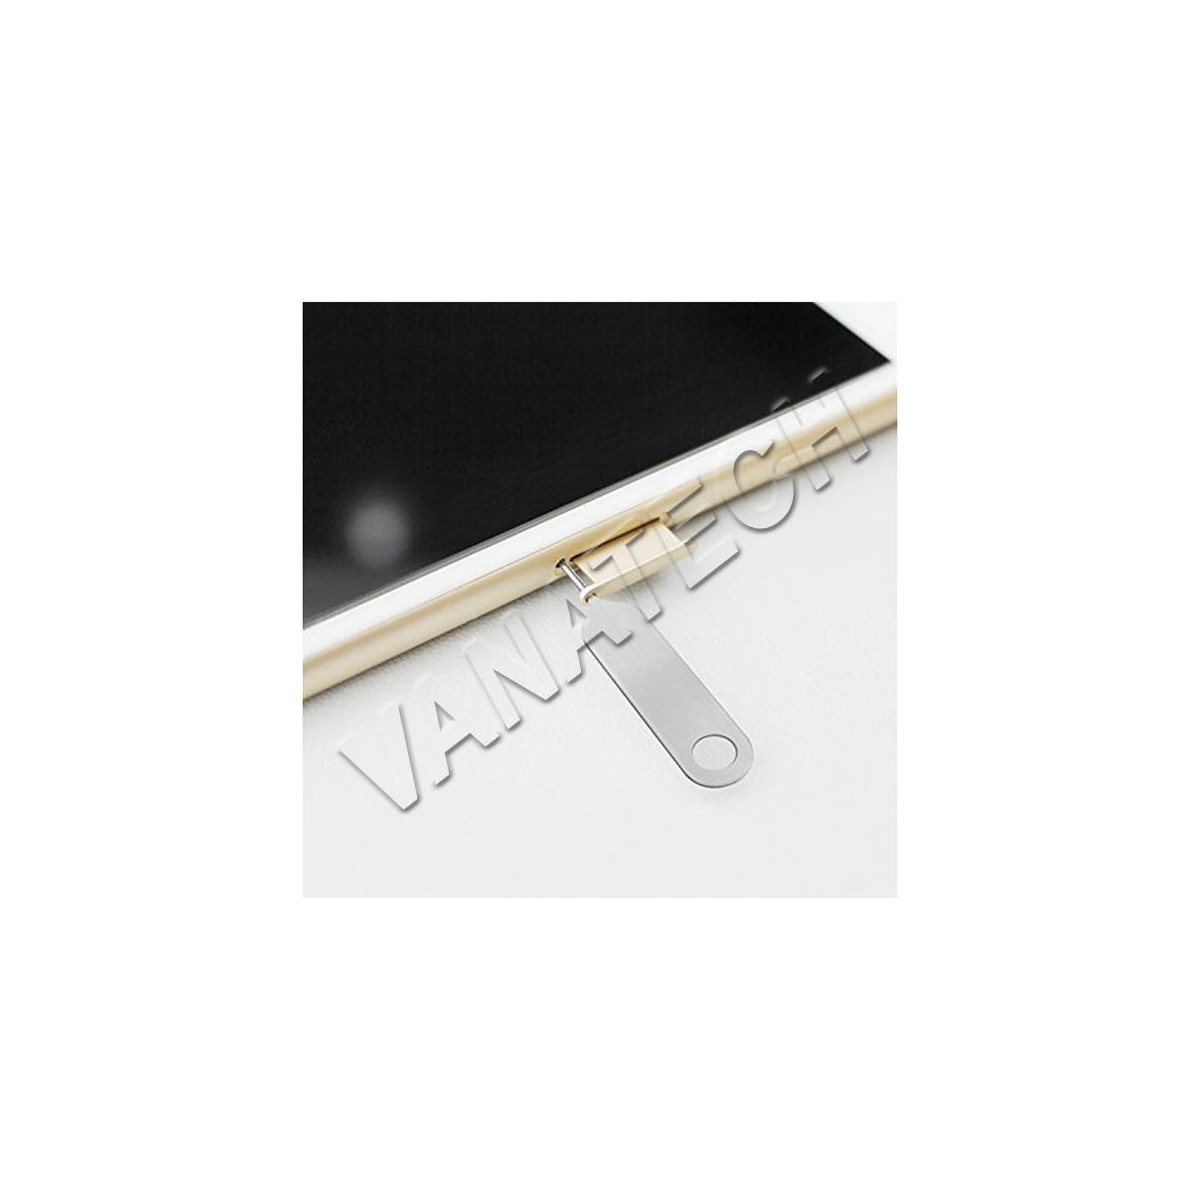 "LCD DISPLAY RETINA VETRO APPLE LCD IPHONE 6 6G BIANCO 4,7"" VETRO TOUCH SCREEN FRAME"